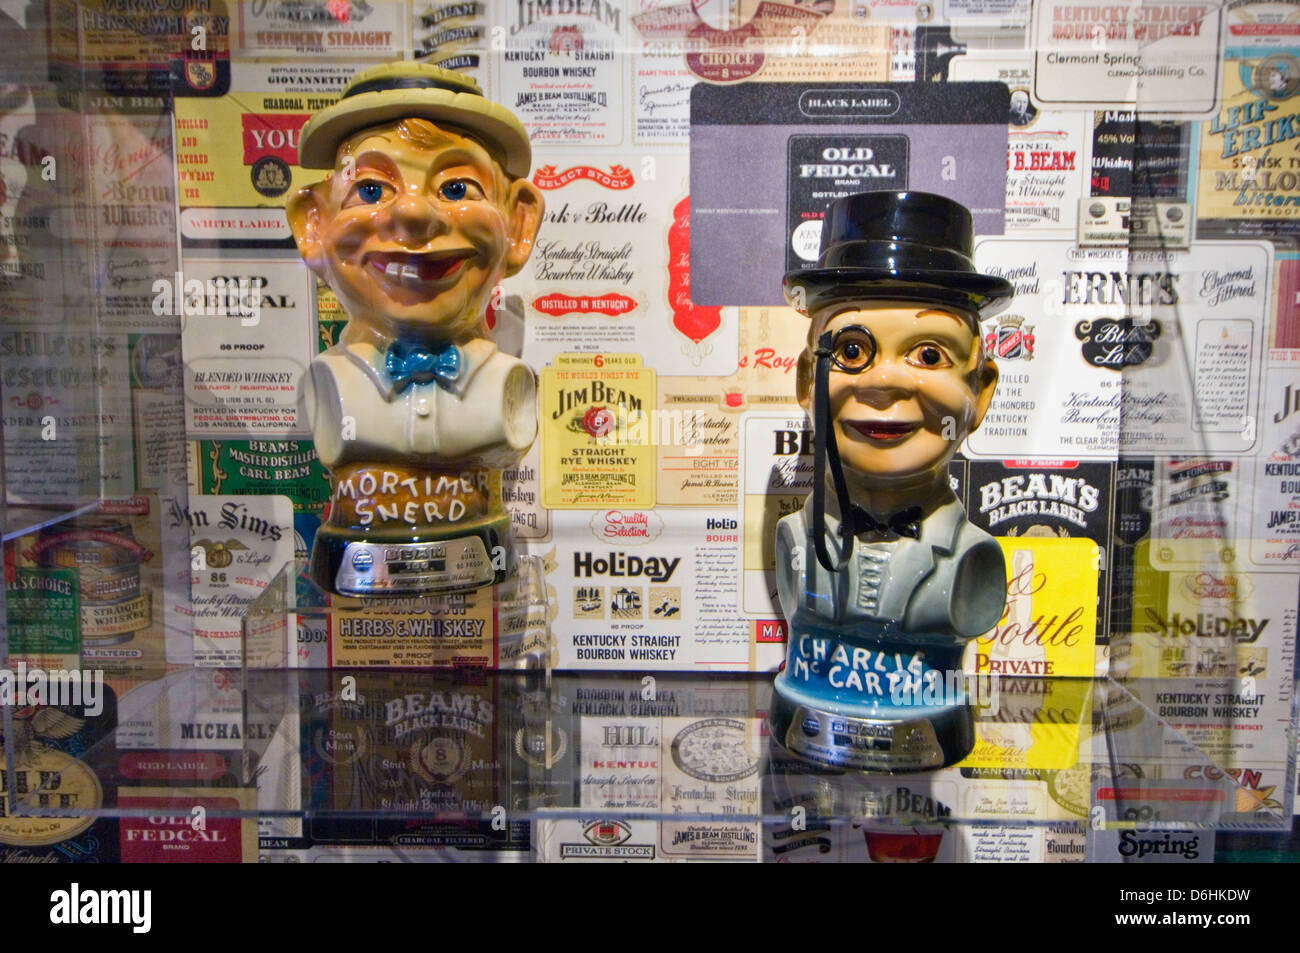 Collectible Mortimer Snerd and Charlie McCarthy Jim Beam Bourbon Decanters on Display at the Jim Beam Distillery - Stock Image